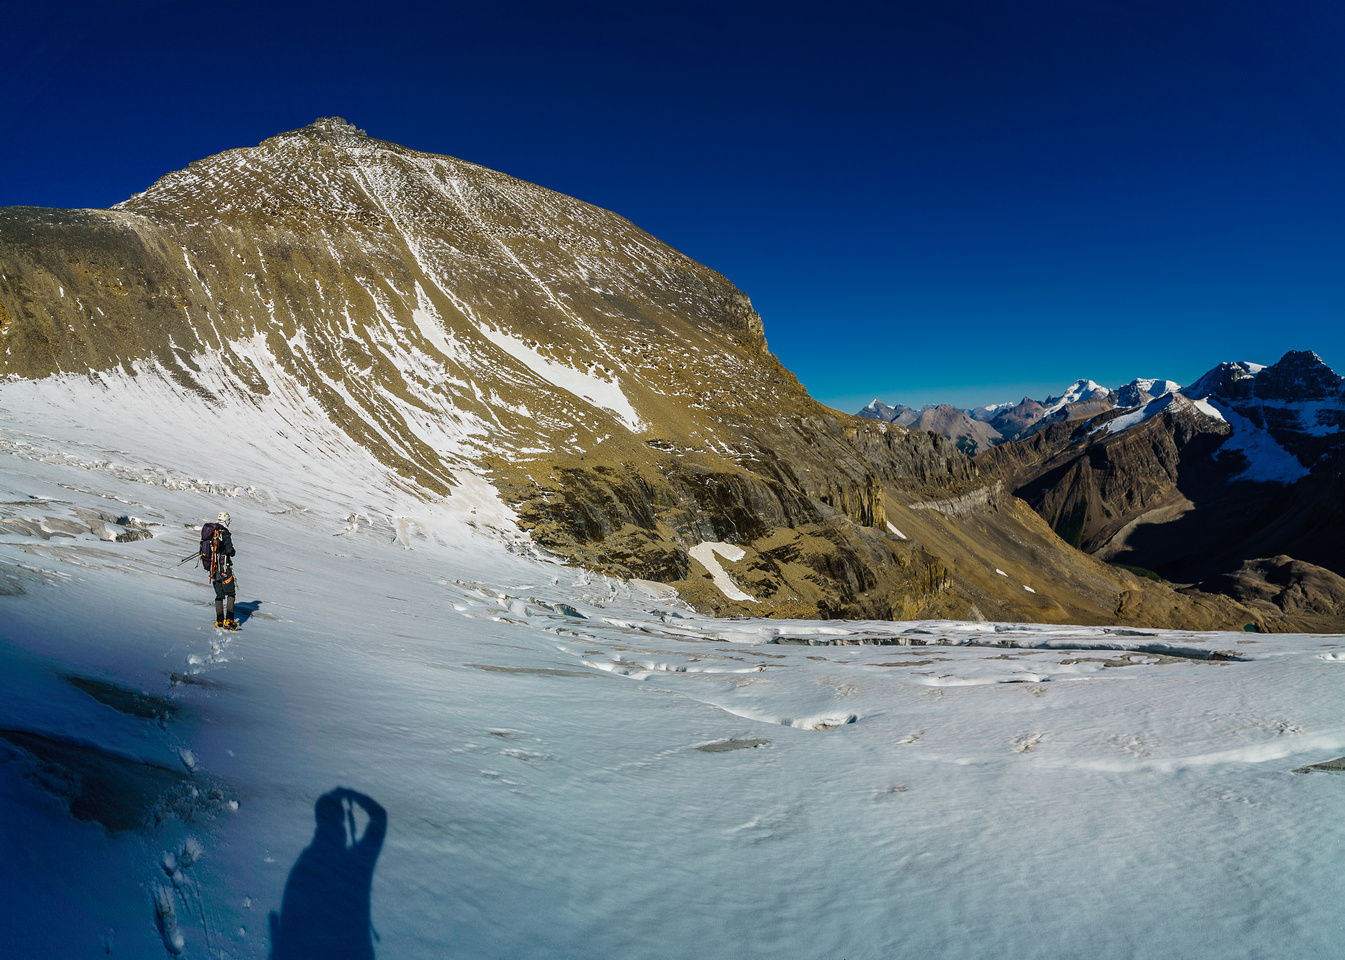 Believe it or not, we have over 500 vertical meters from here to the summit.